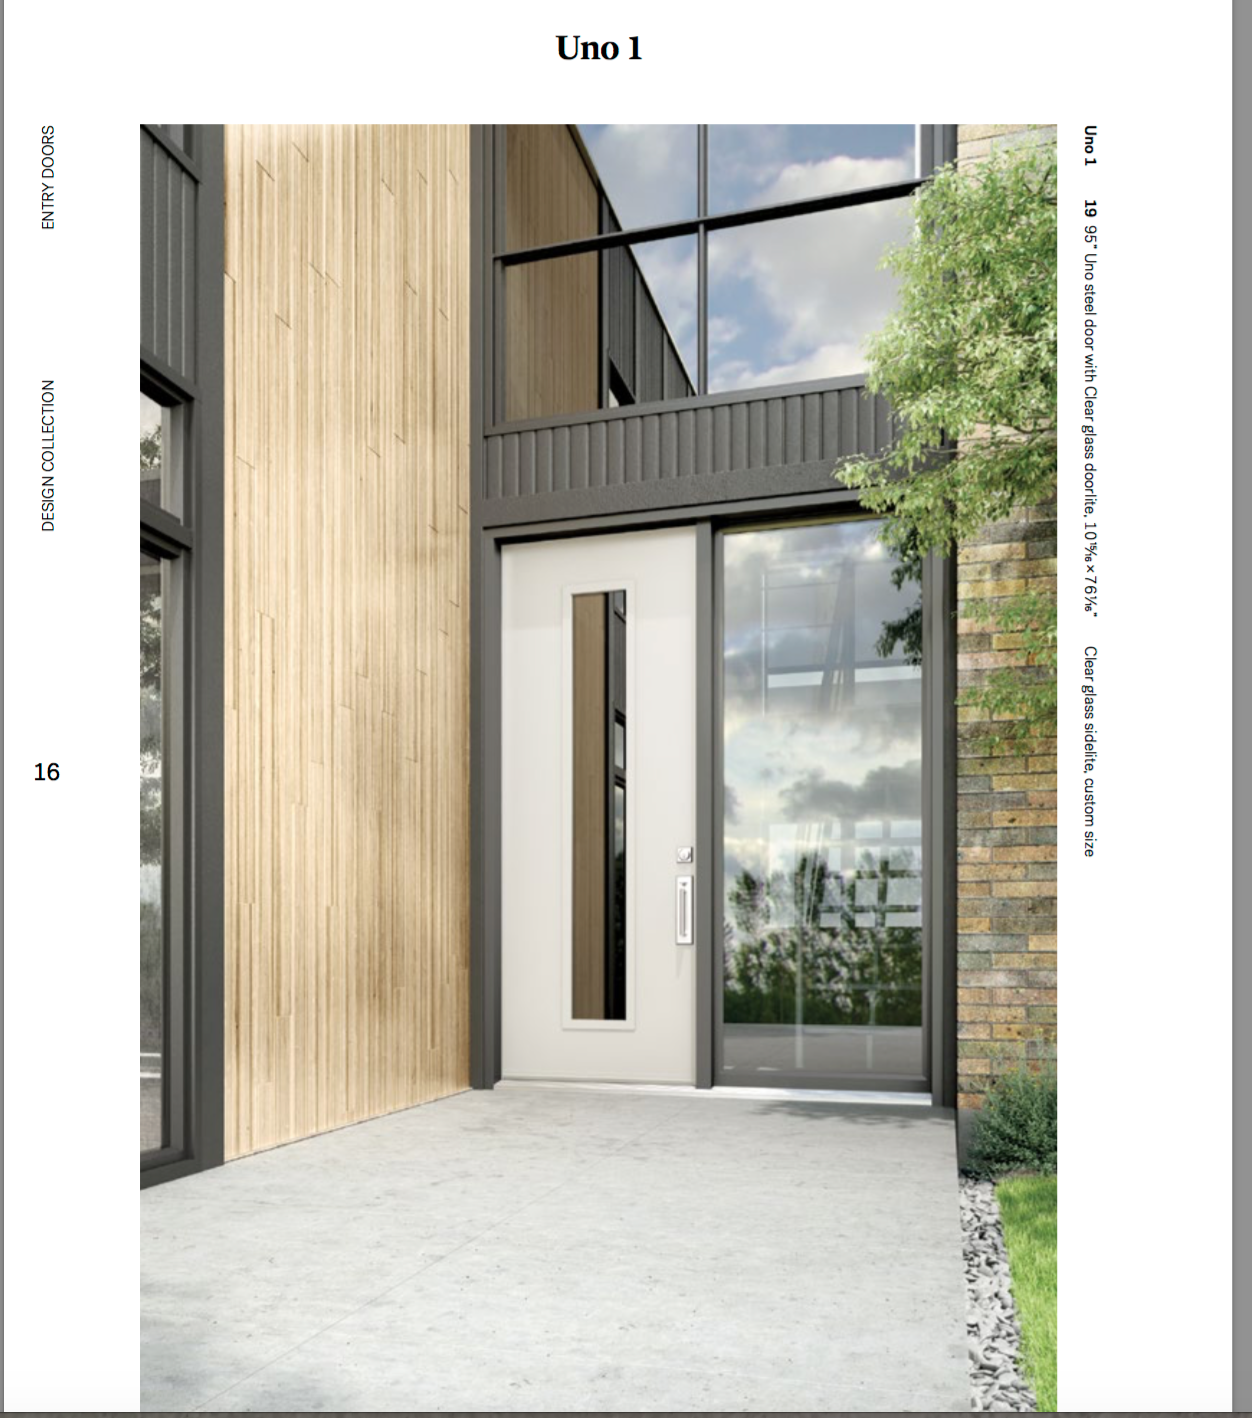 novatech from eco choice windows and doors & novatech from eco choice windows and doors | Ideas for our house ...